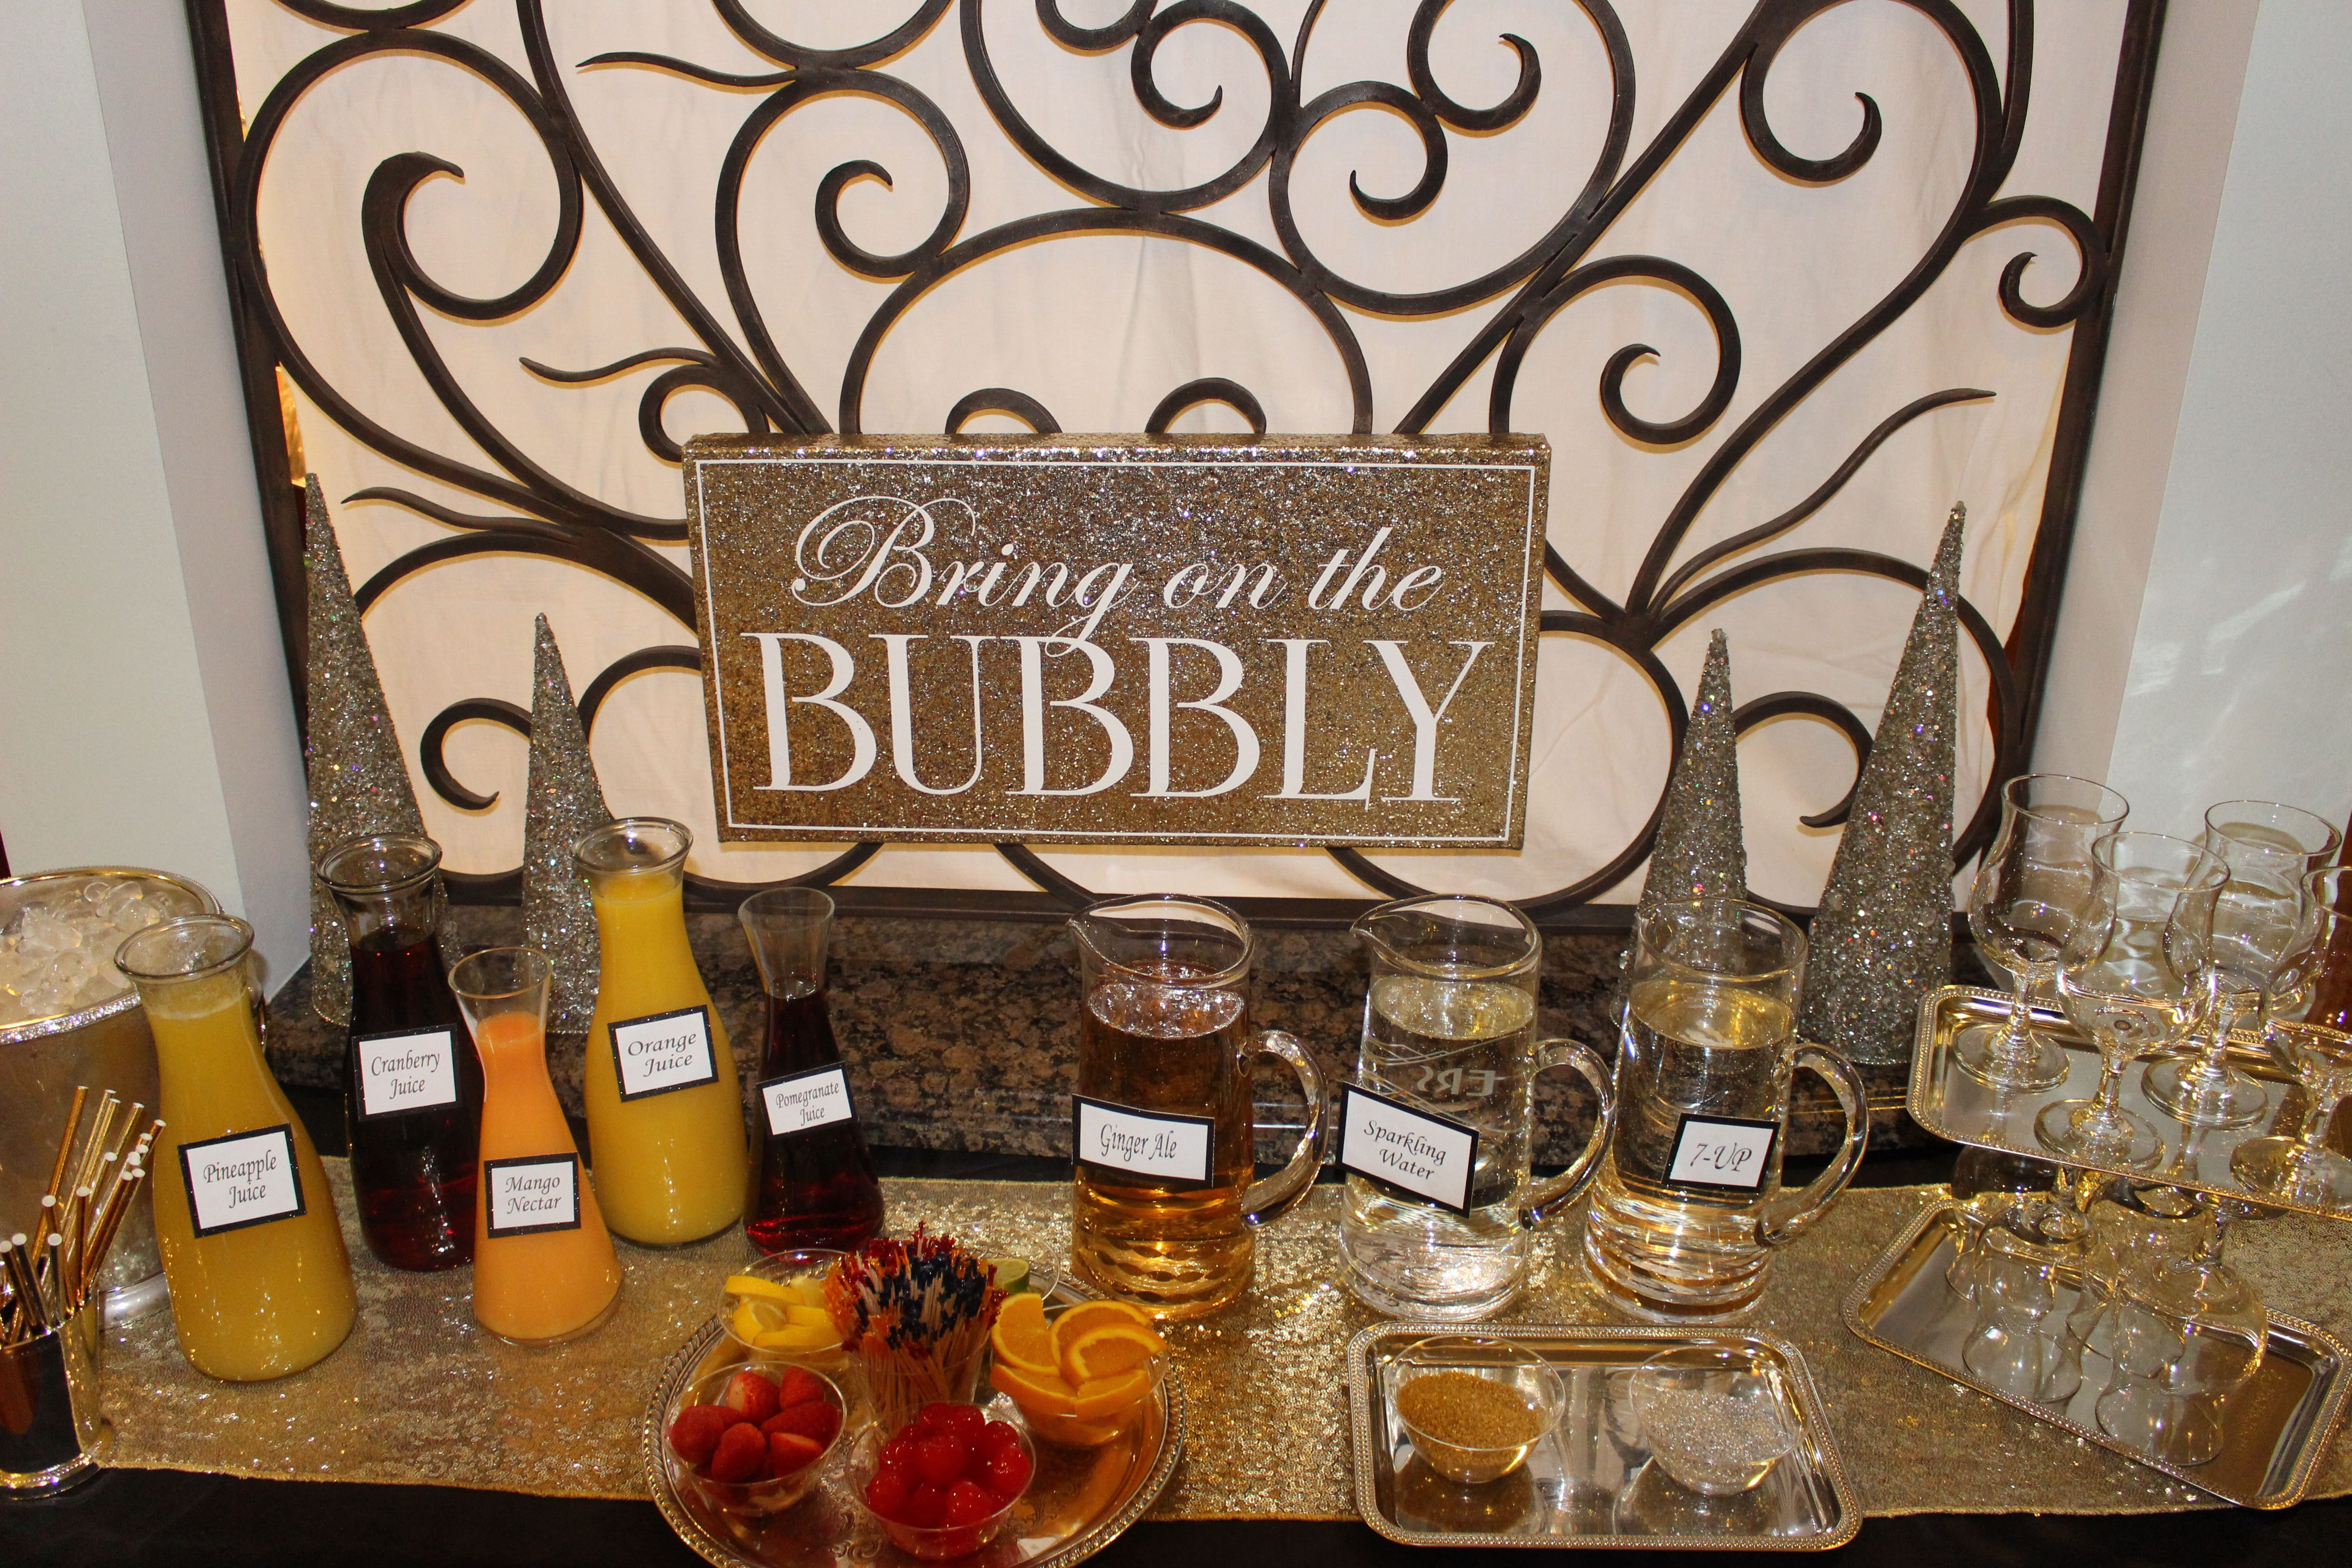 Pin on Celebrations-New Year's Eve Teen Mocktail Bar